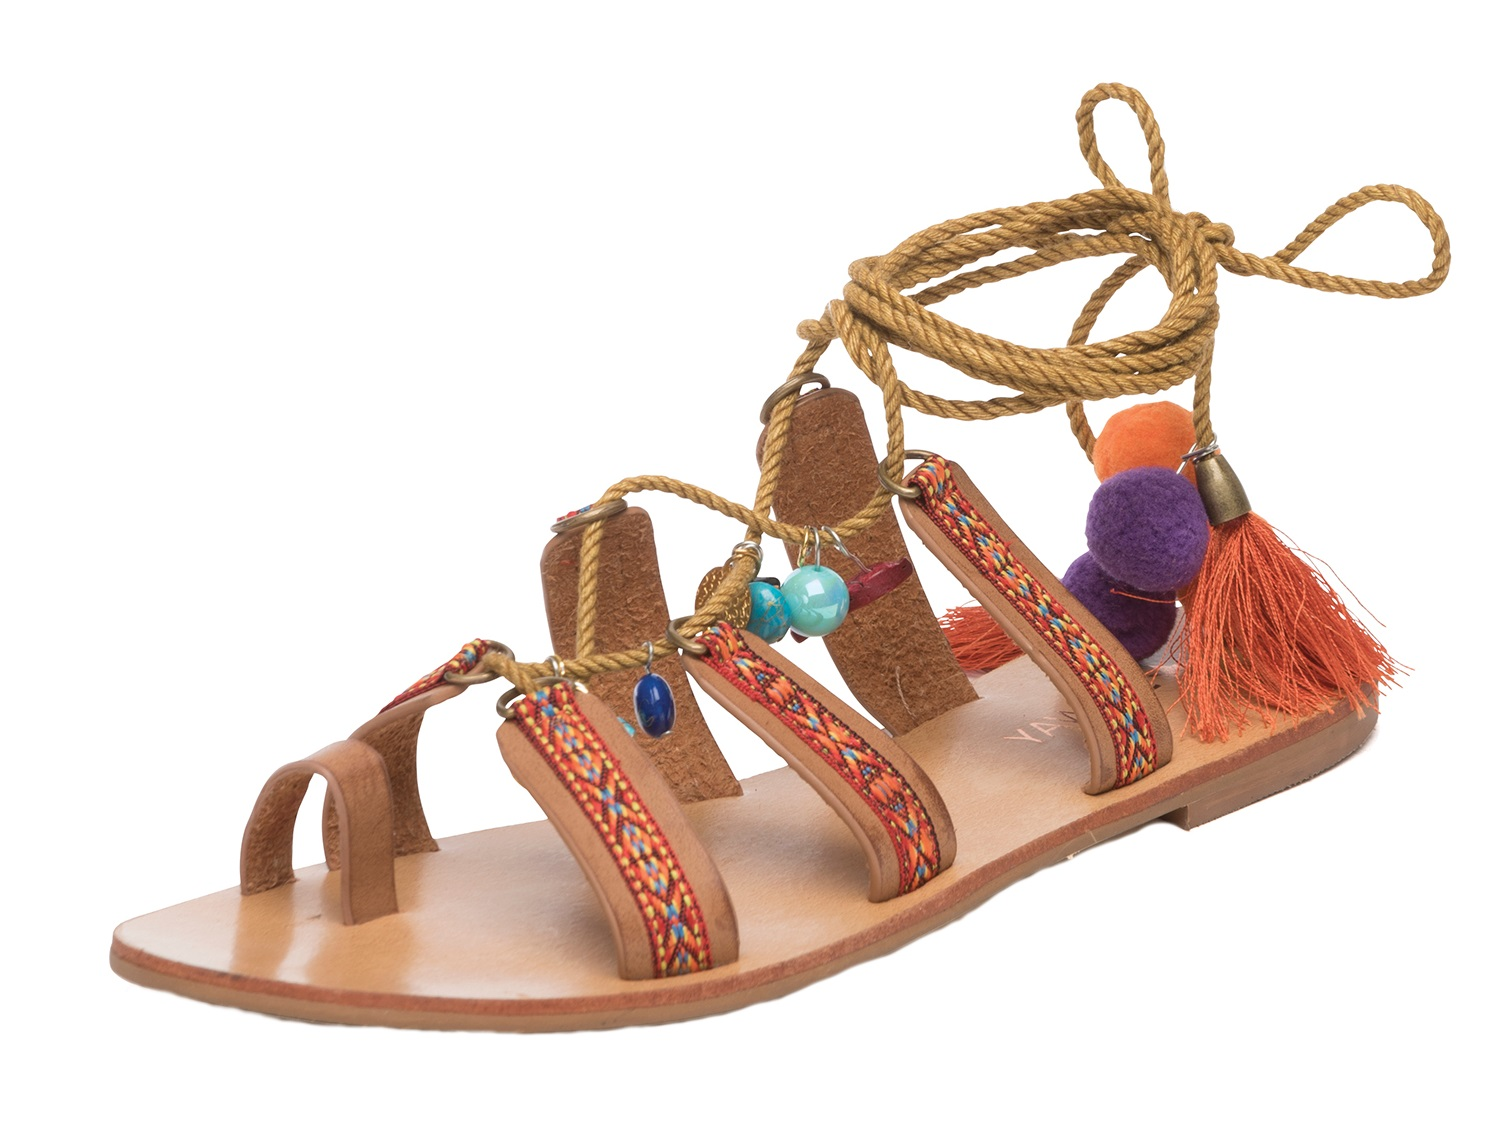 Womens Pom Pom Lace Up Sandals Flat Strappy Tassel Summer ...